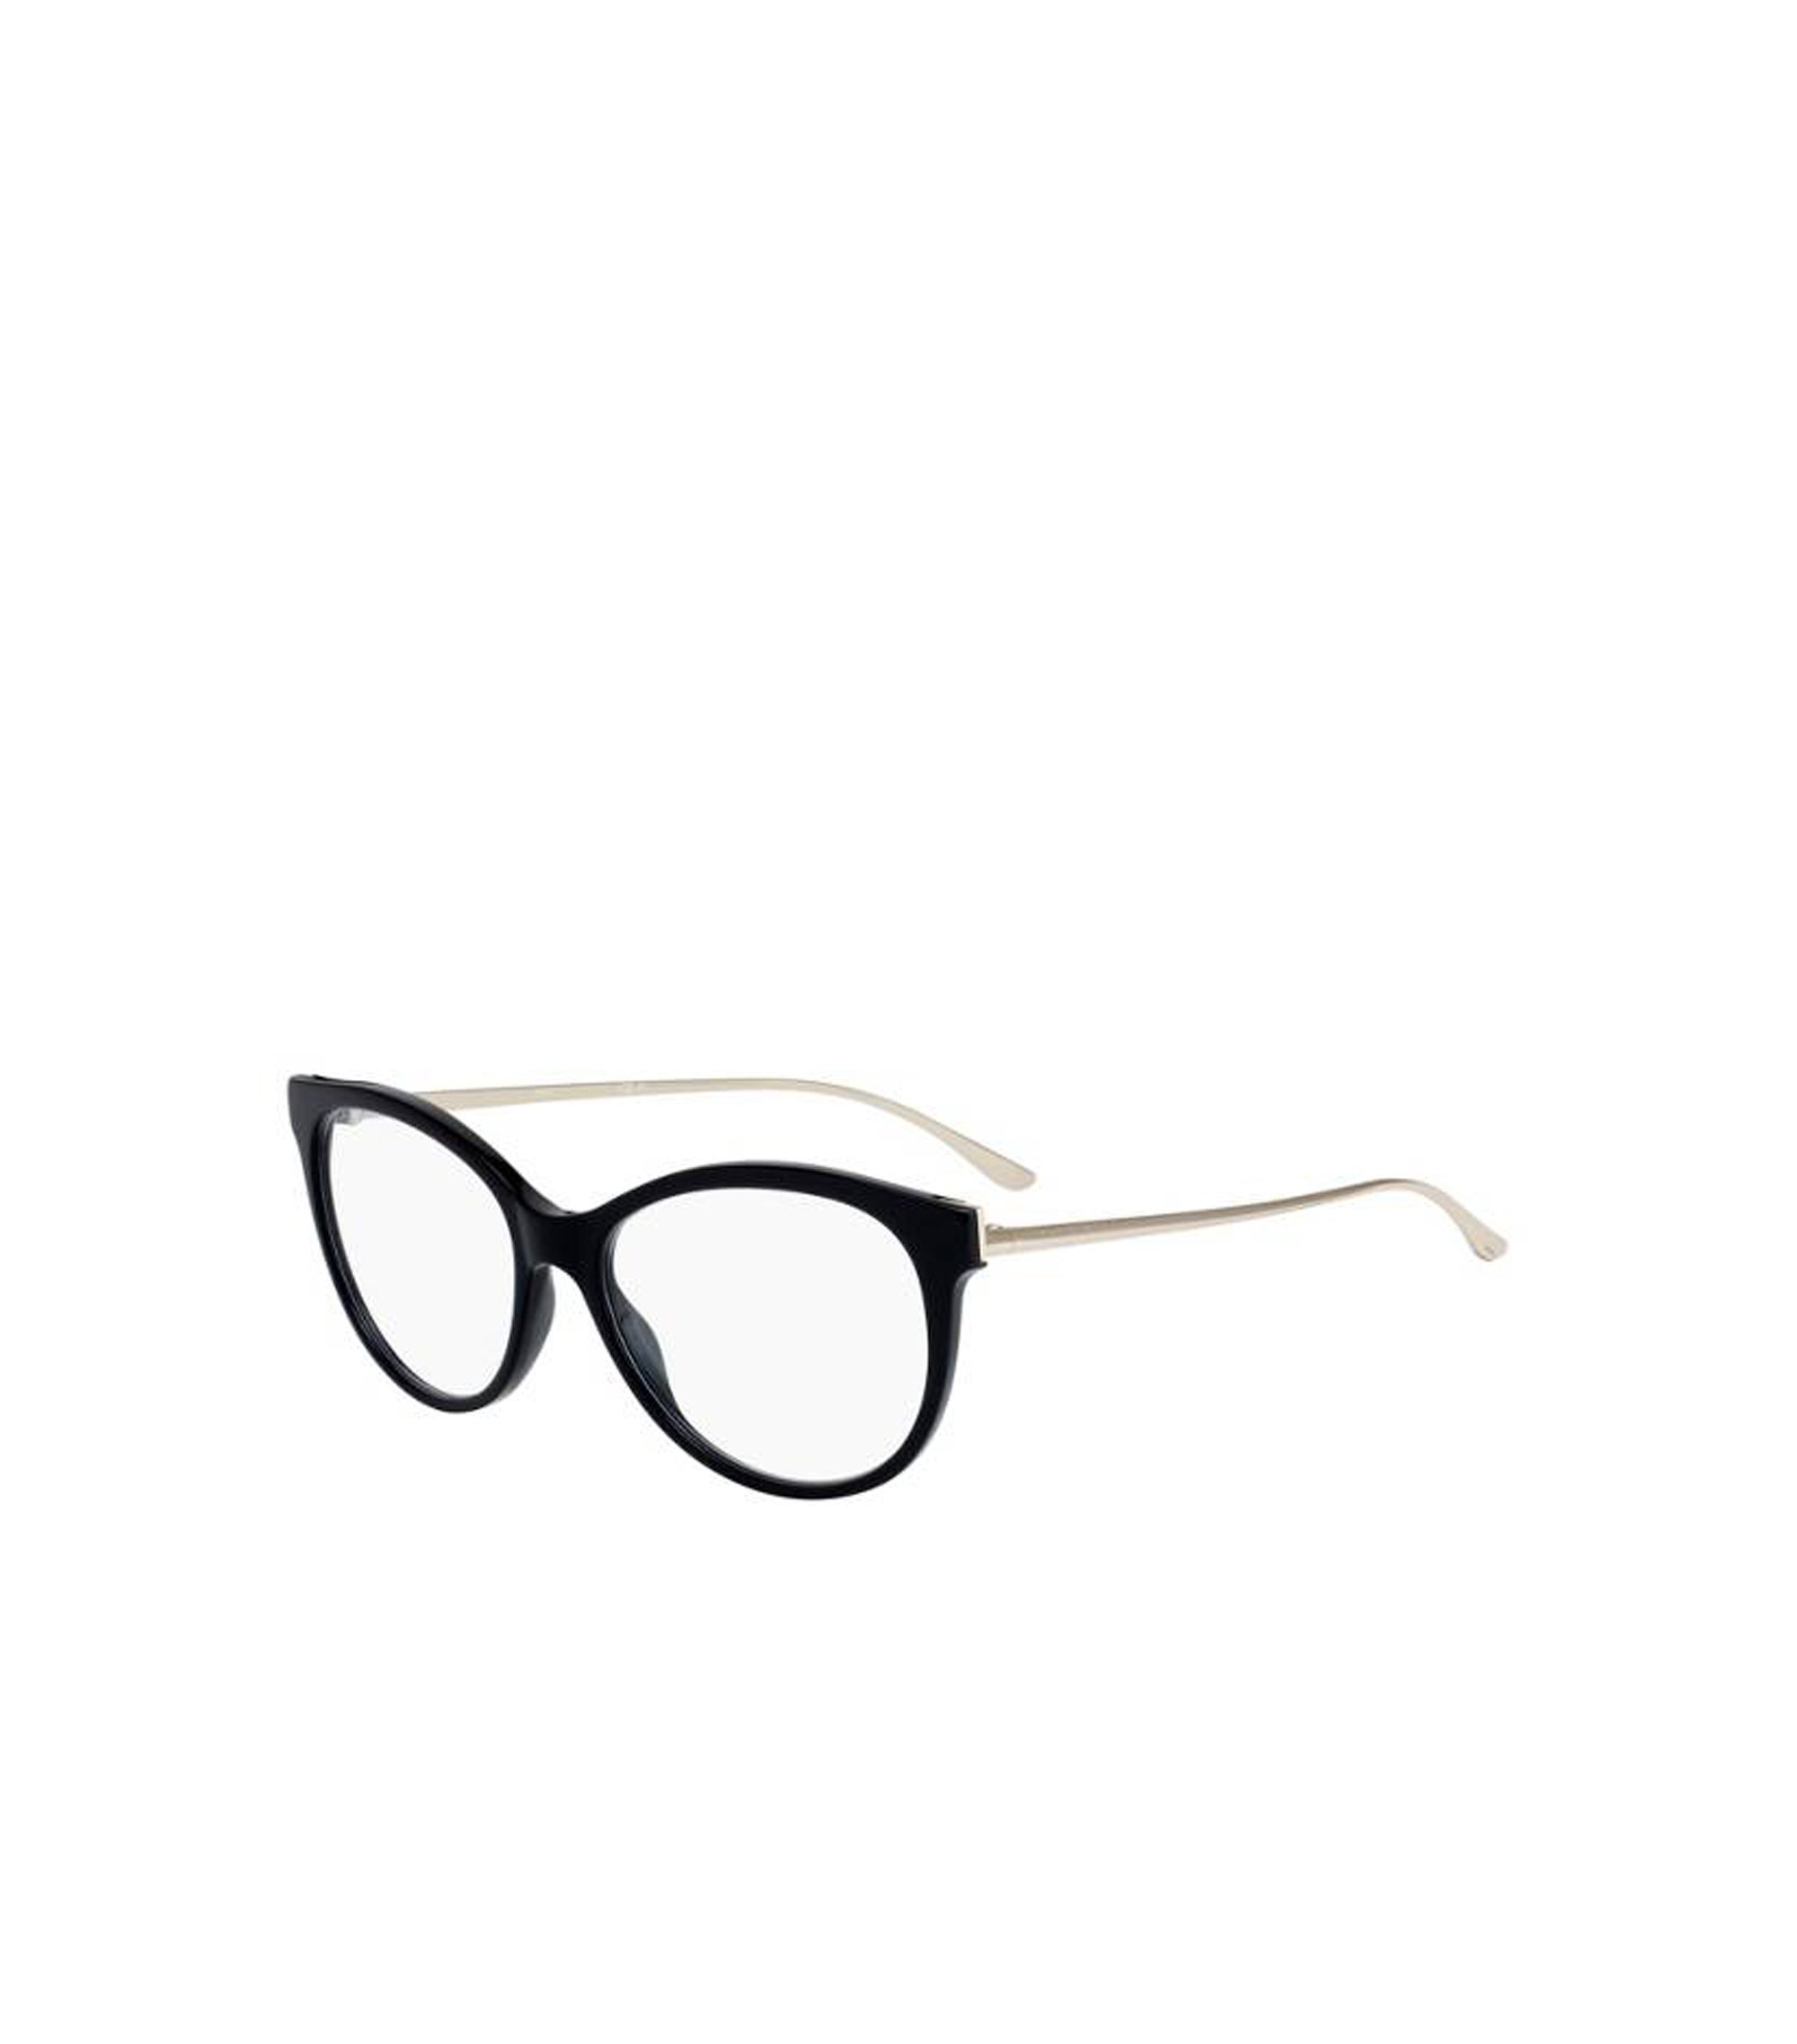 Black Acetate Cat-Eye Optical Frames | BOSS 0894 RHP, Assorted-Pre-Pack